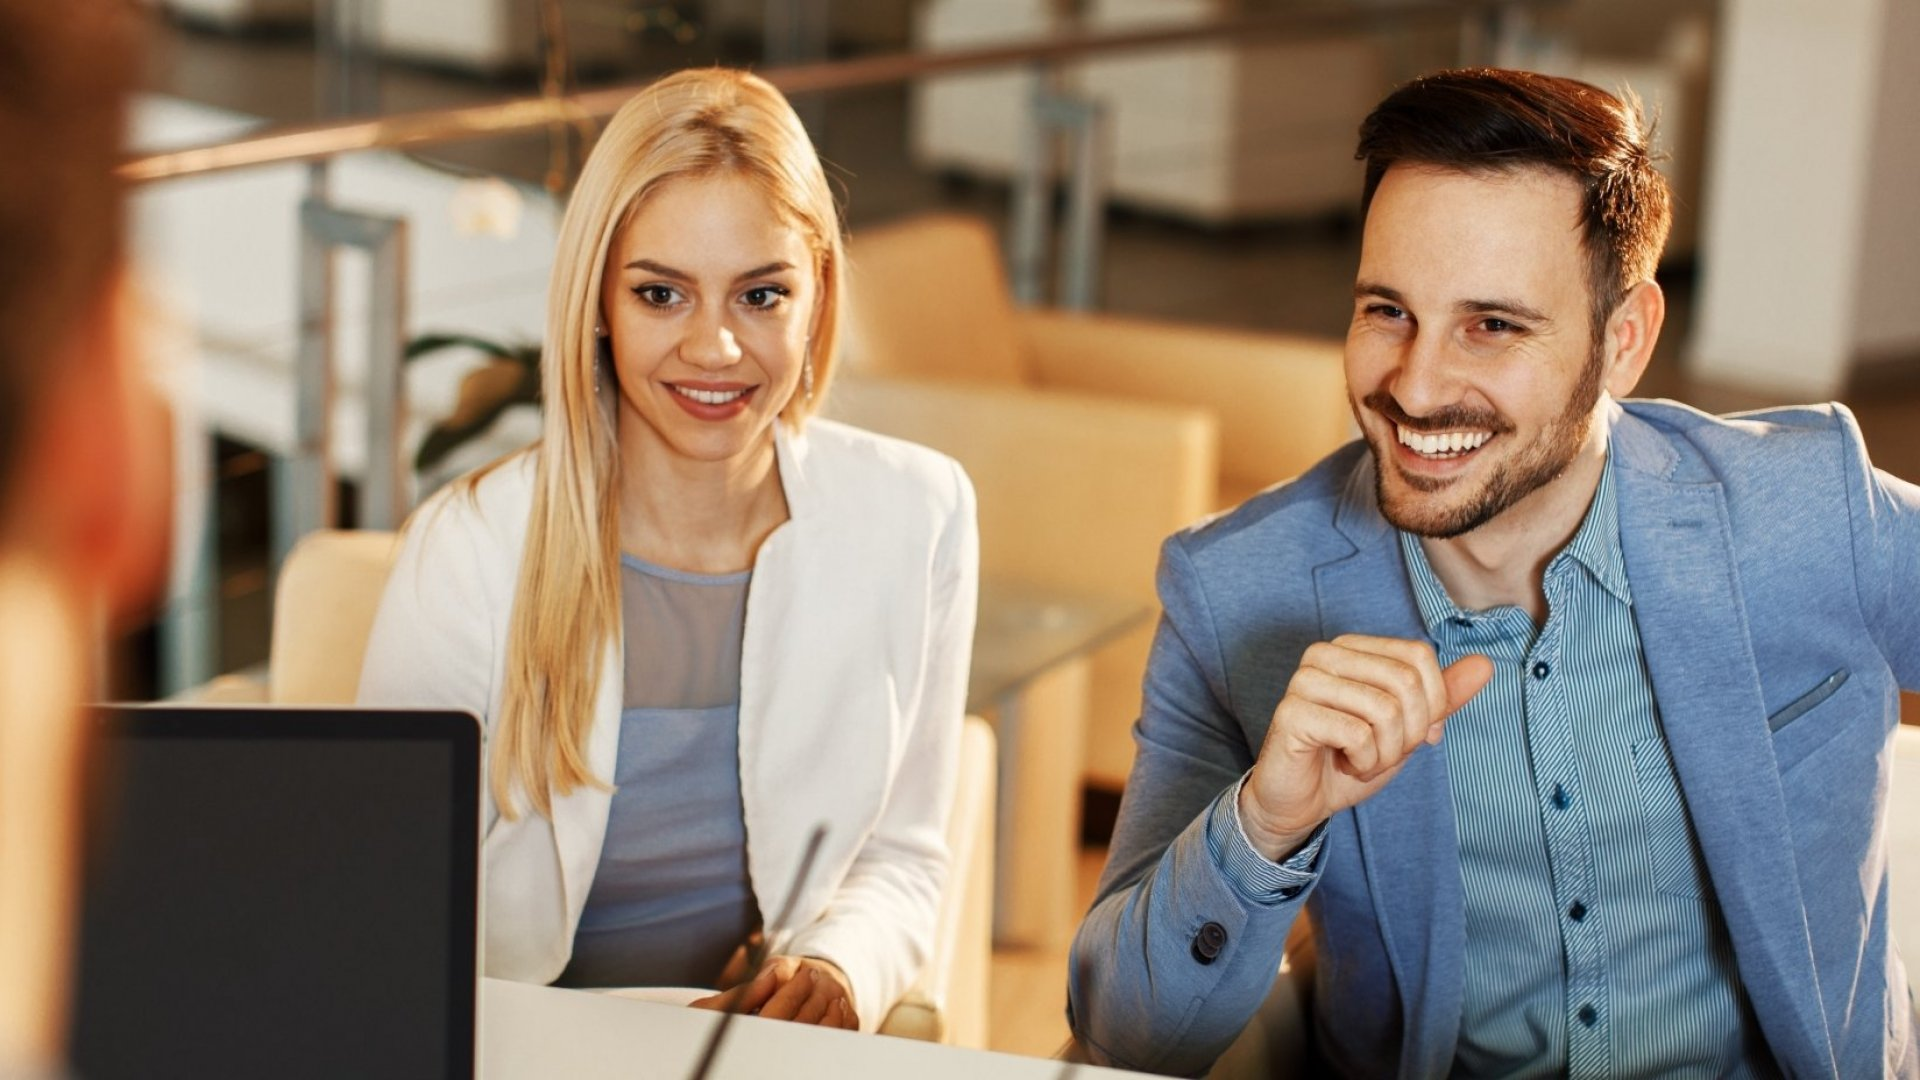 5 Surprisingly Effective Ways to Reward Employees the Right (Not the Wrong) Way